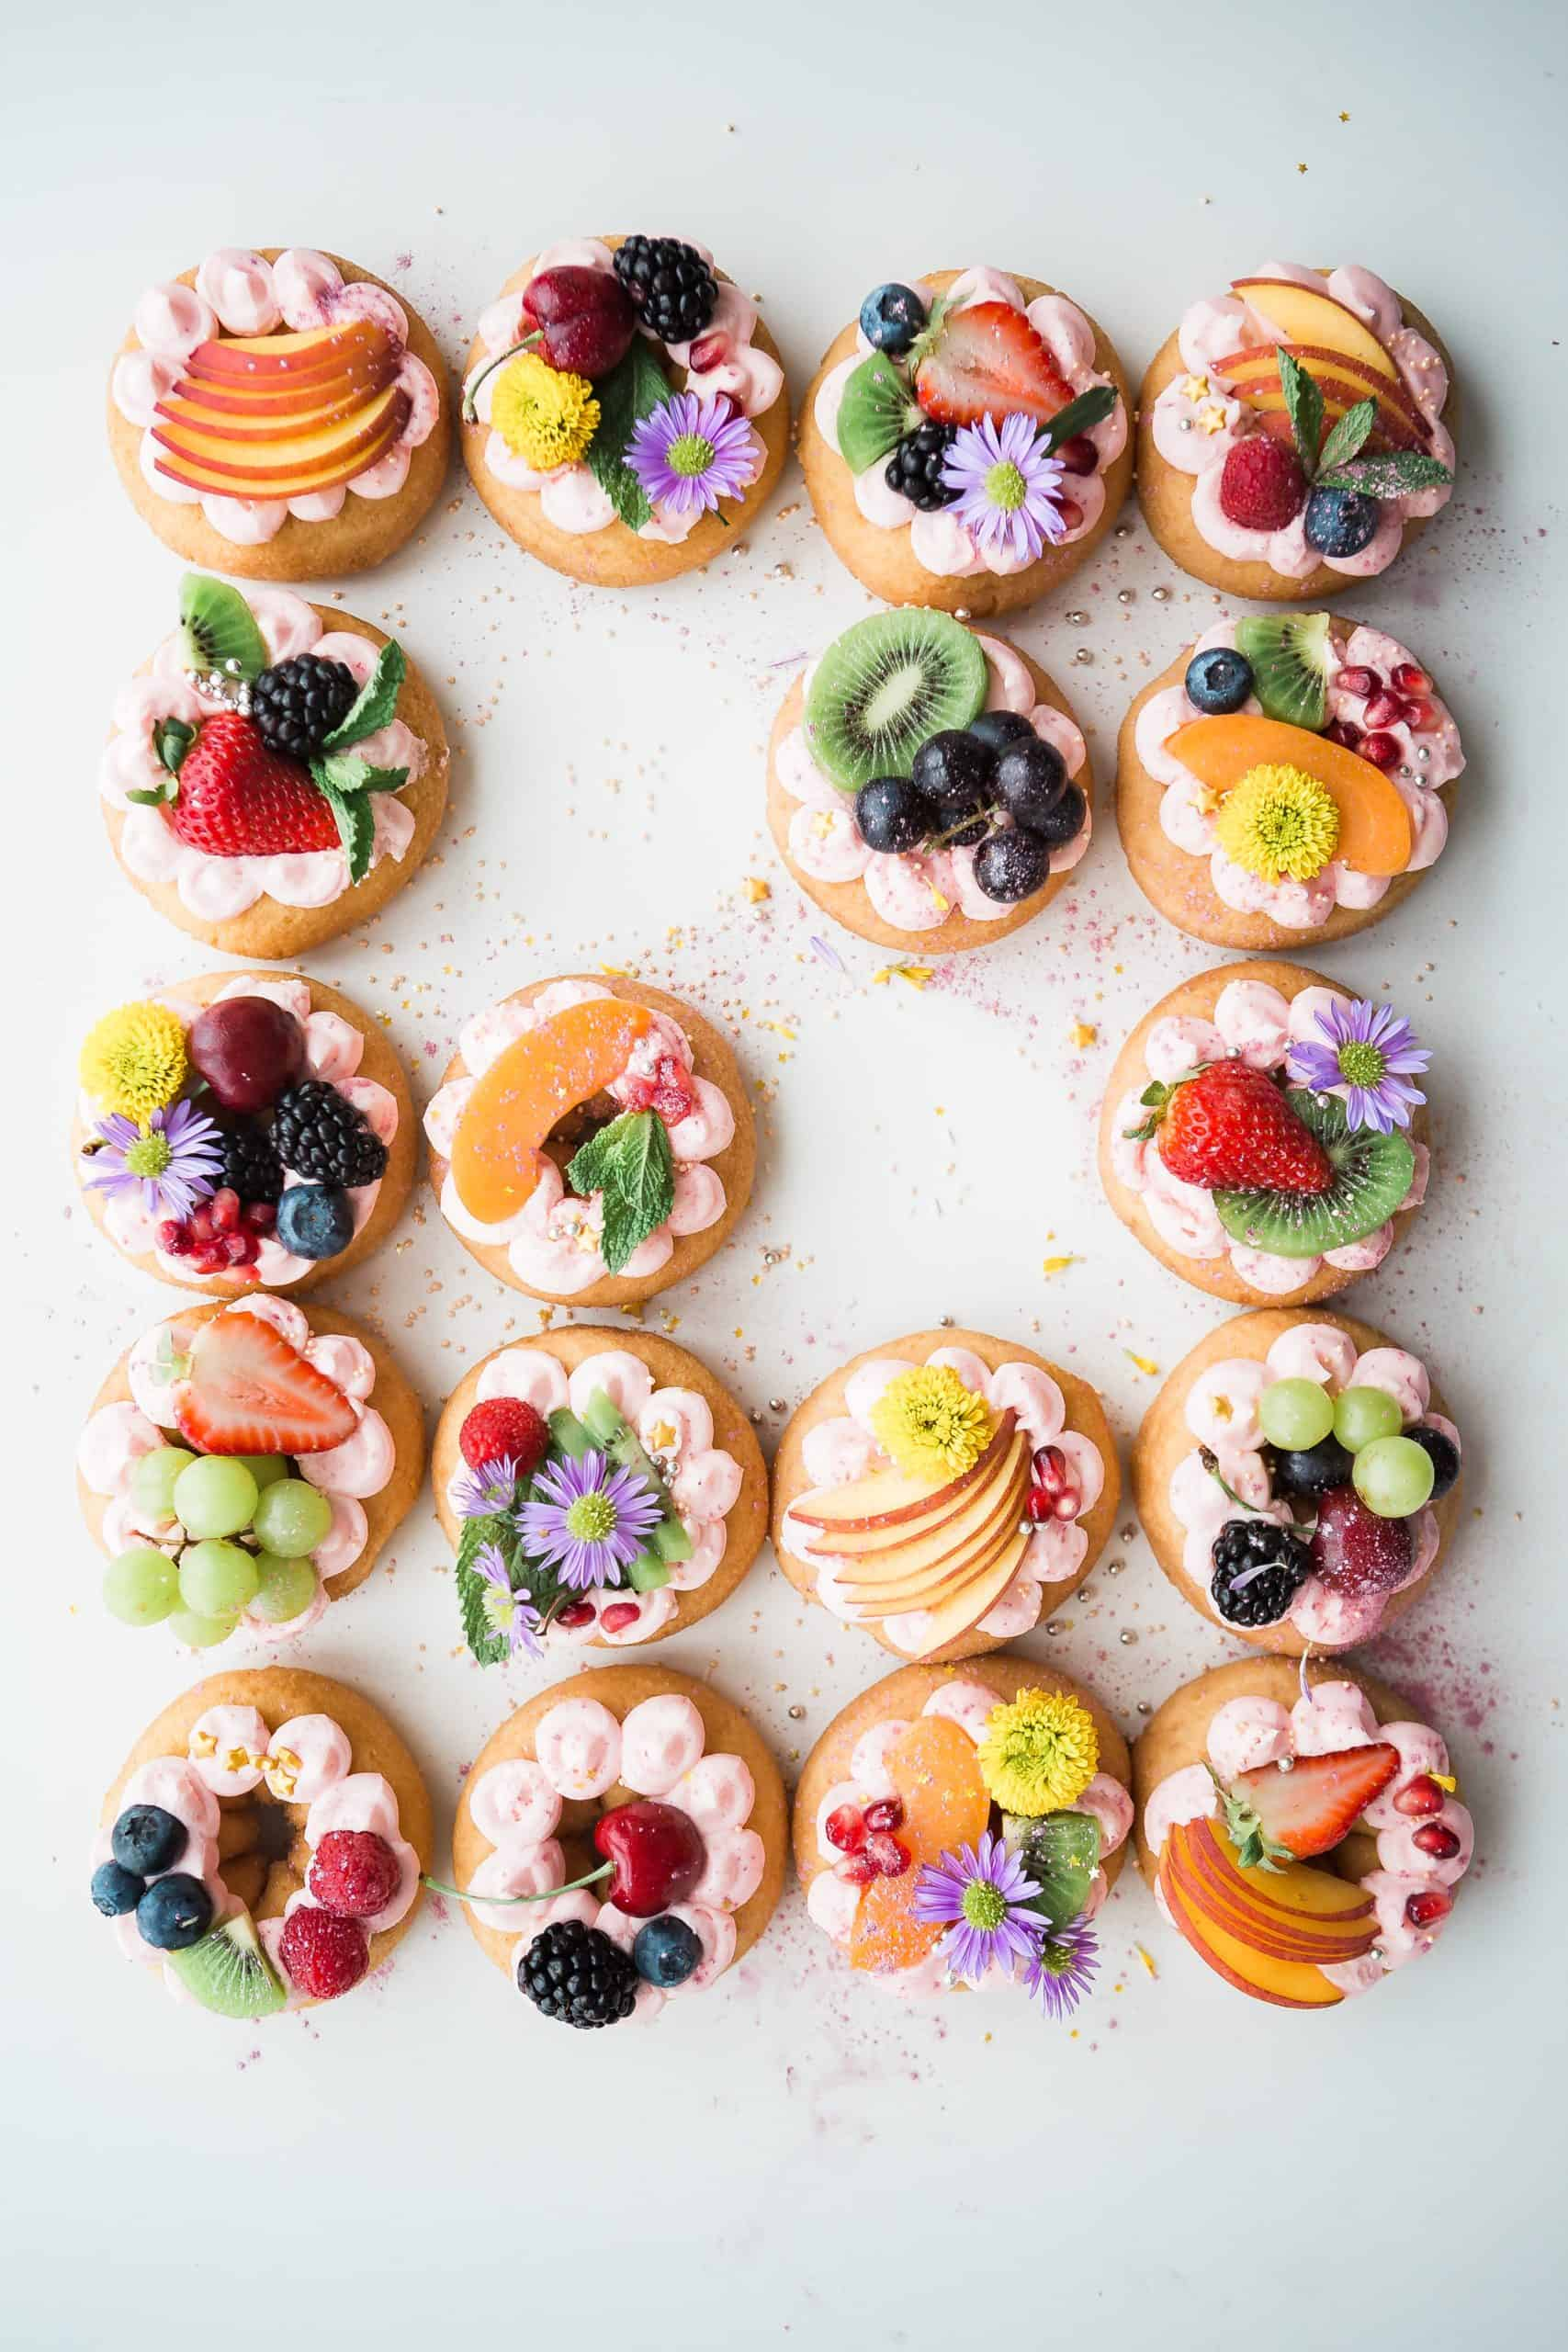 Some Interesting Facts About Patisserie To Excite You